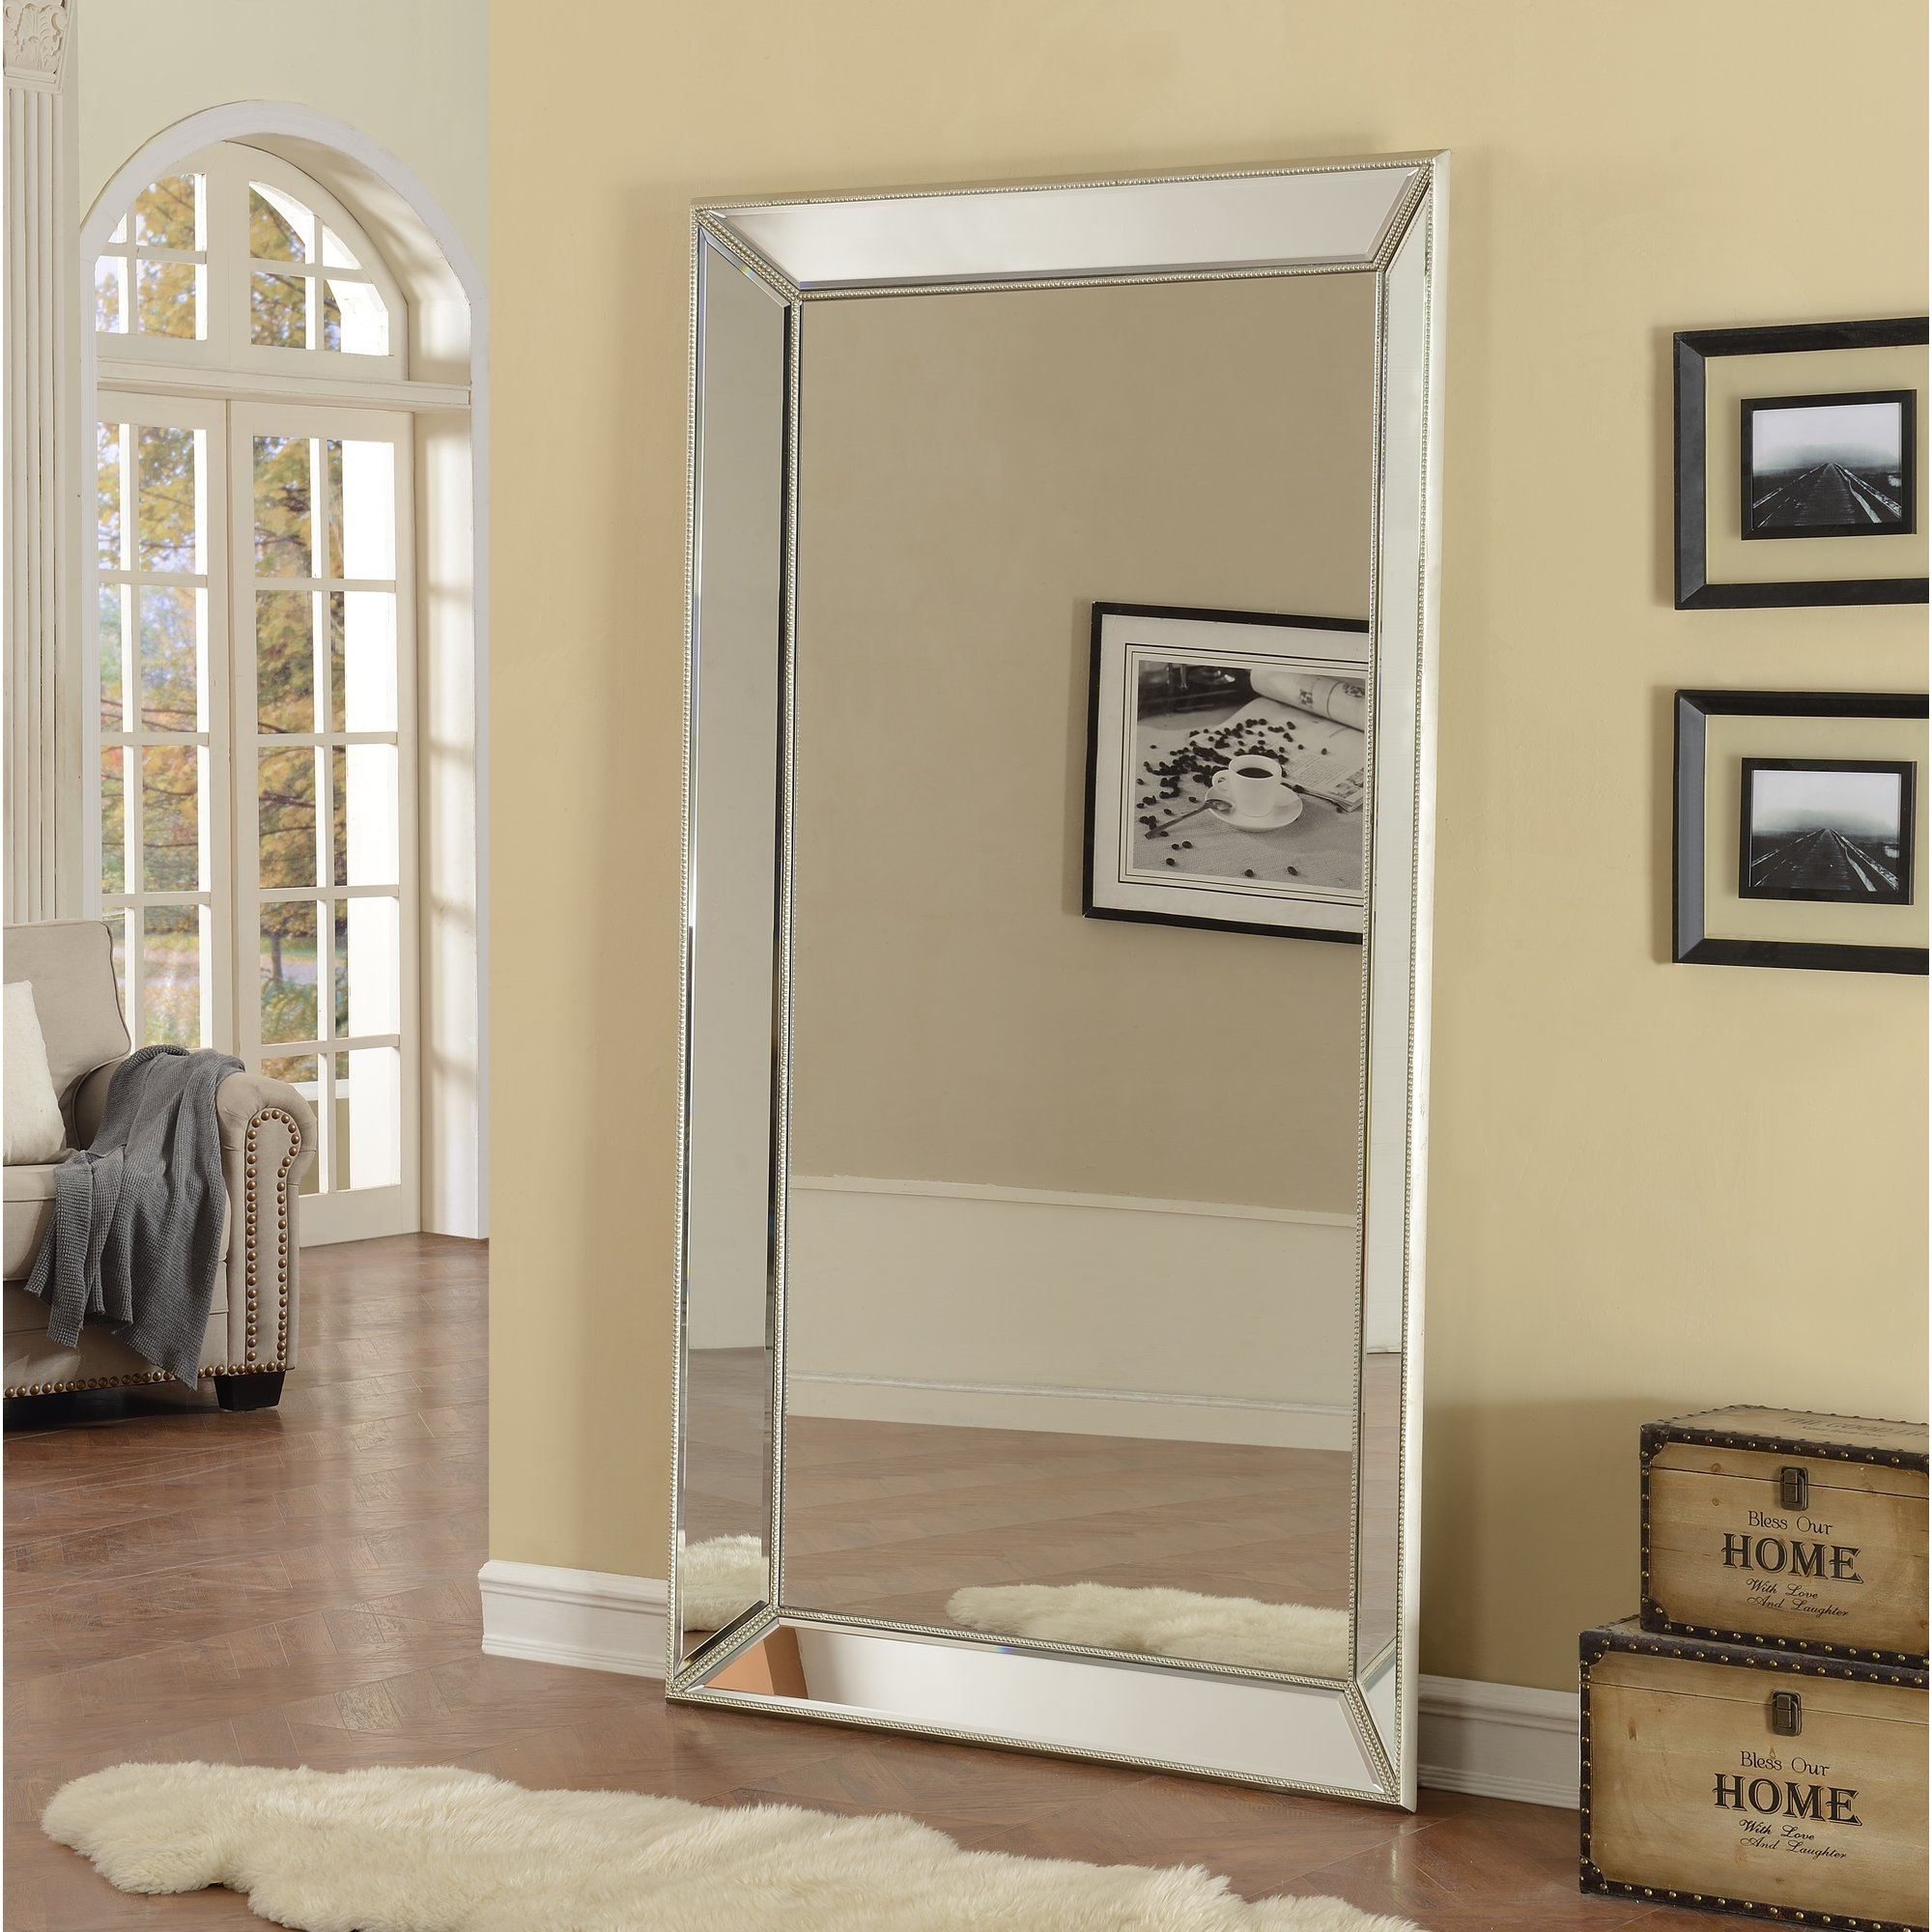 Floor Mirrors Youll Love Wayfair Regarding French Floor Mirrors (View 11 of 15)